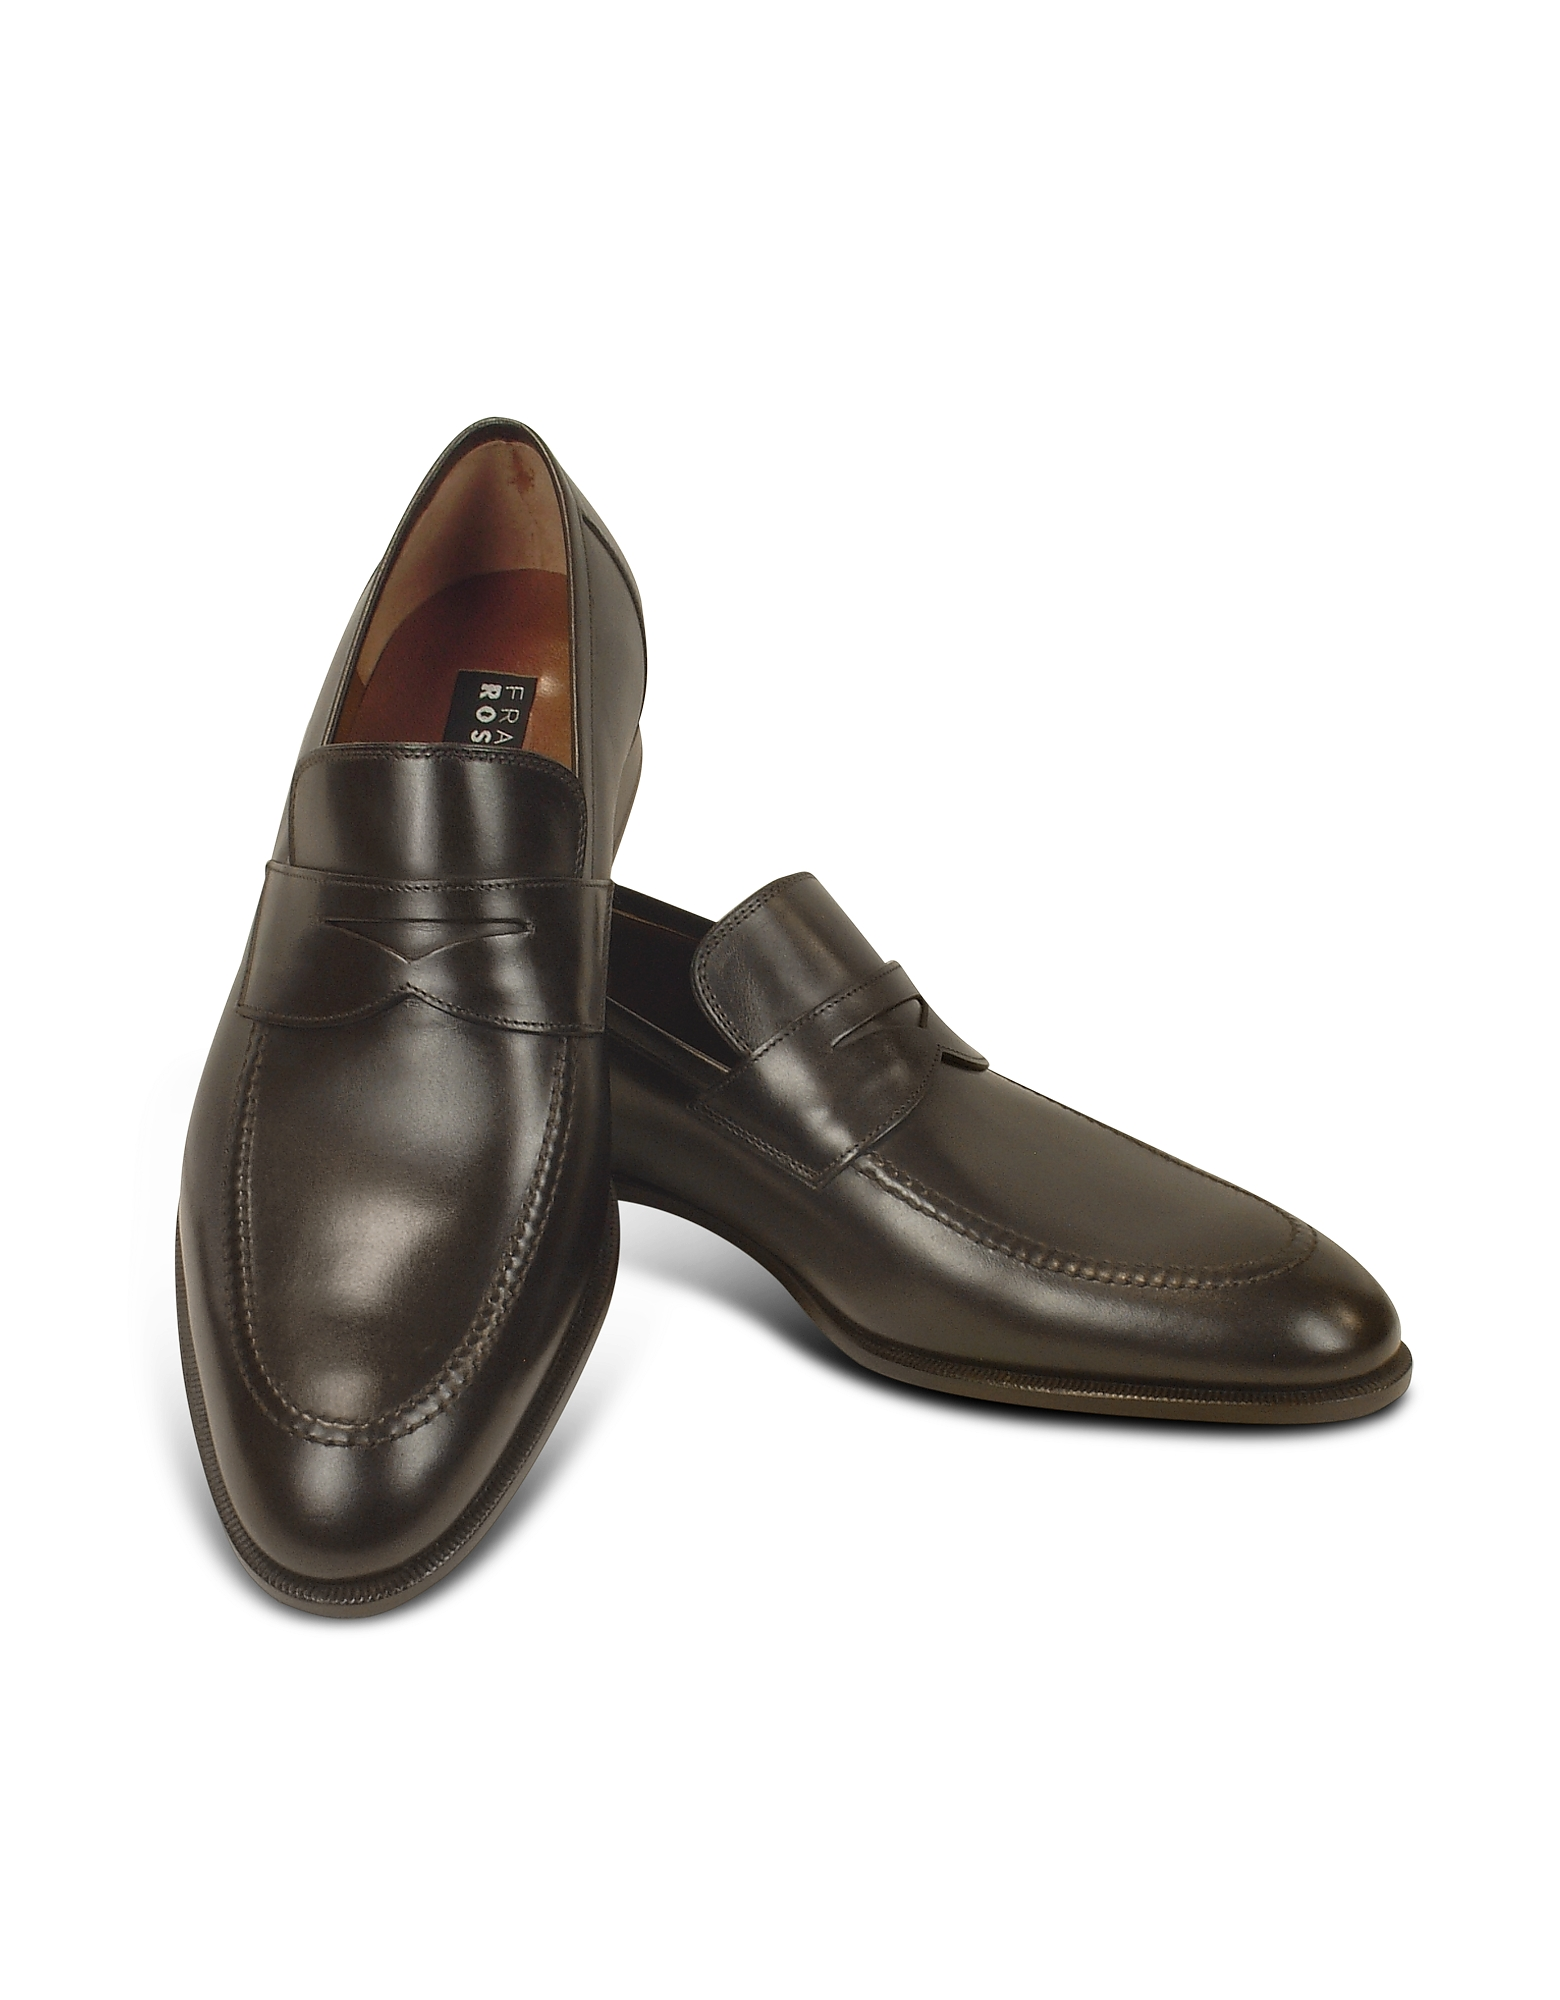 Fratelli Rossetti Shoes, Dark Brown Calf Leather Penny Loafer Shoes